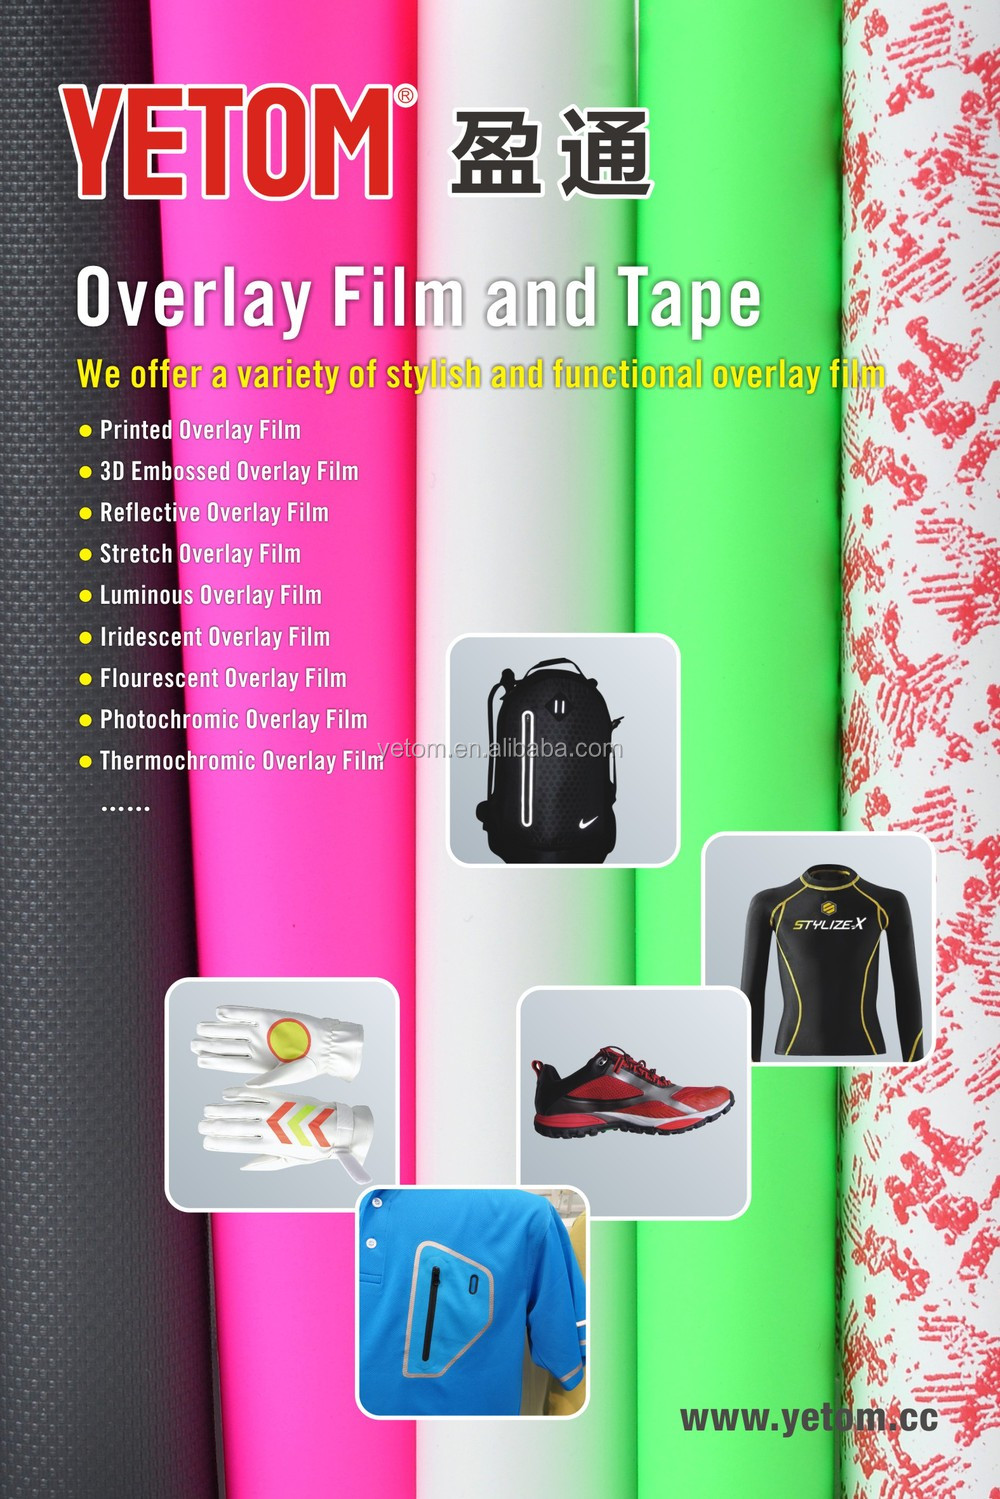 Embossed devorative overlay film for fabric bonding and seamless pocket logo pressing